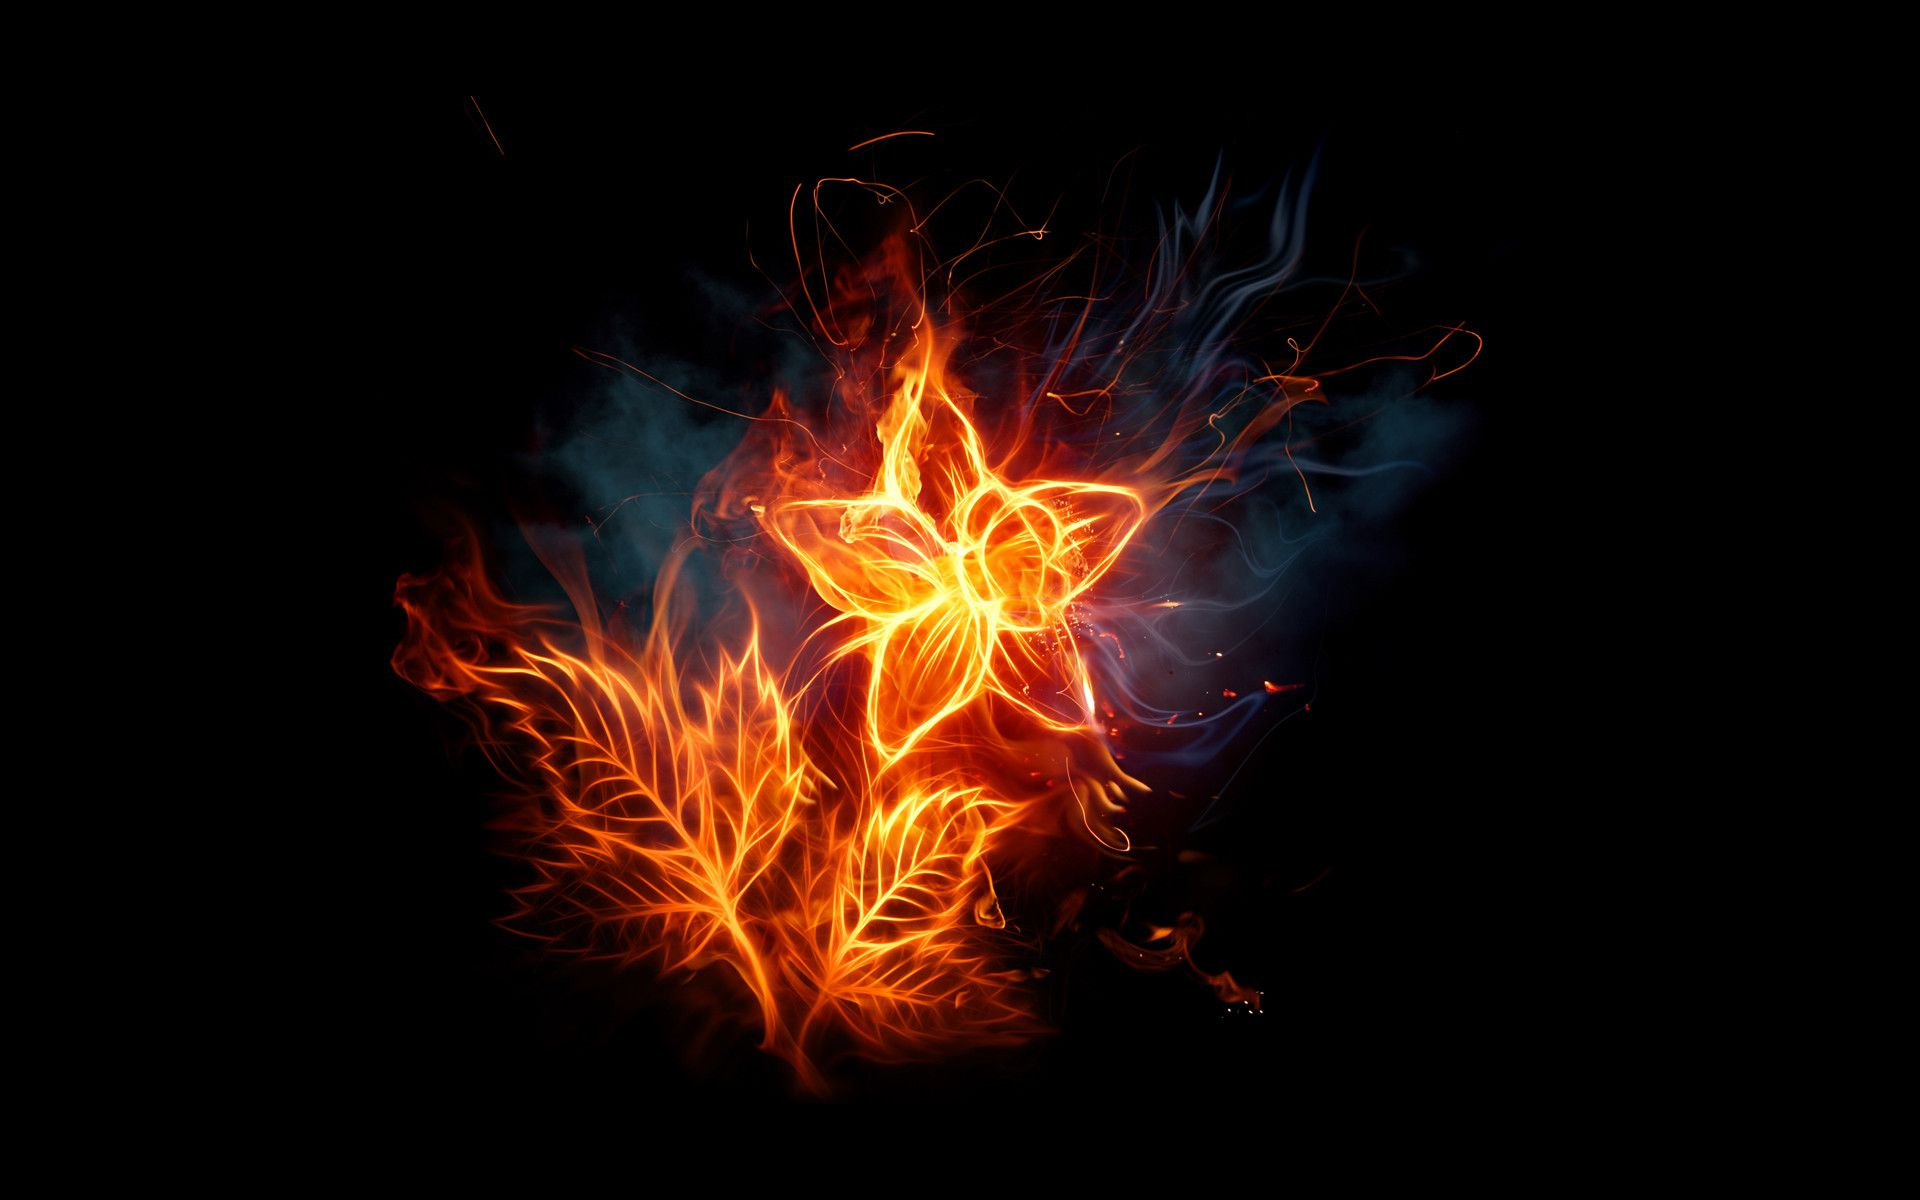 Hd wallpapers fiery flowers fire and flame pinterest hd wallpaper hd wallpapers fiery flowers thecheapjerseys Gallery